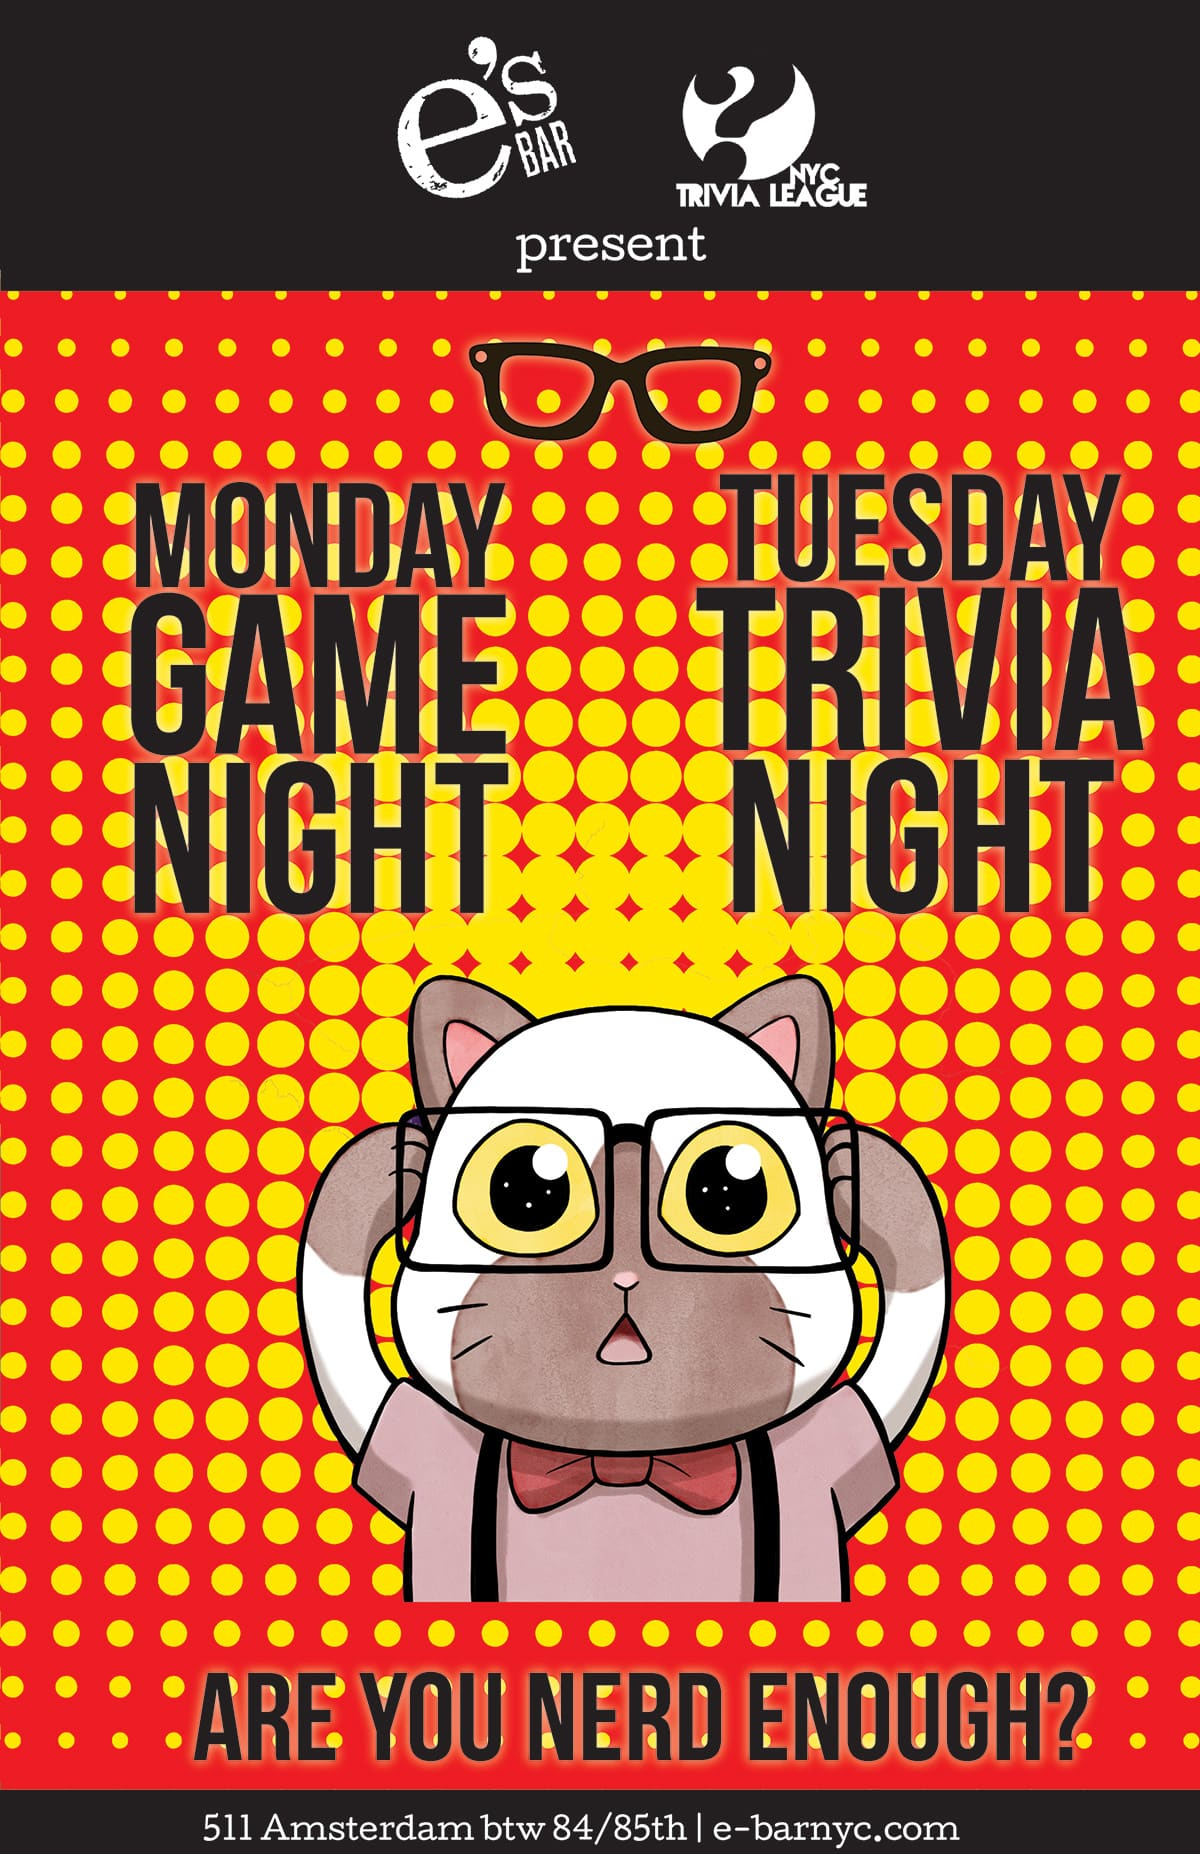 e's BAR Game Night Poster with the Nerd Cat